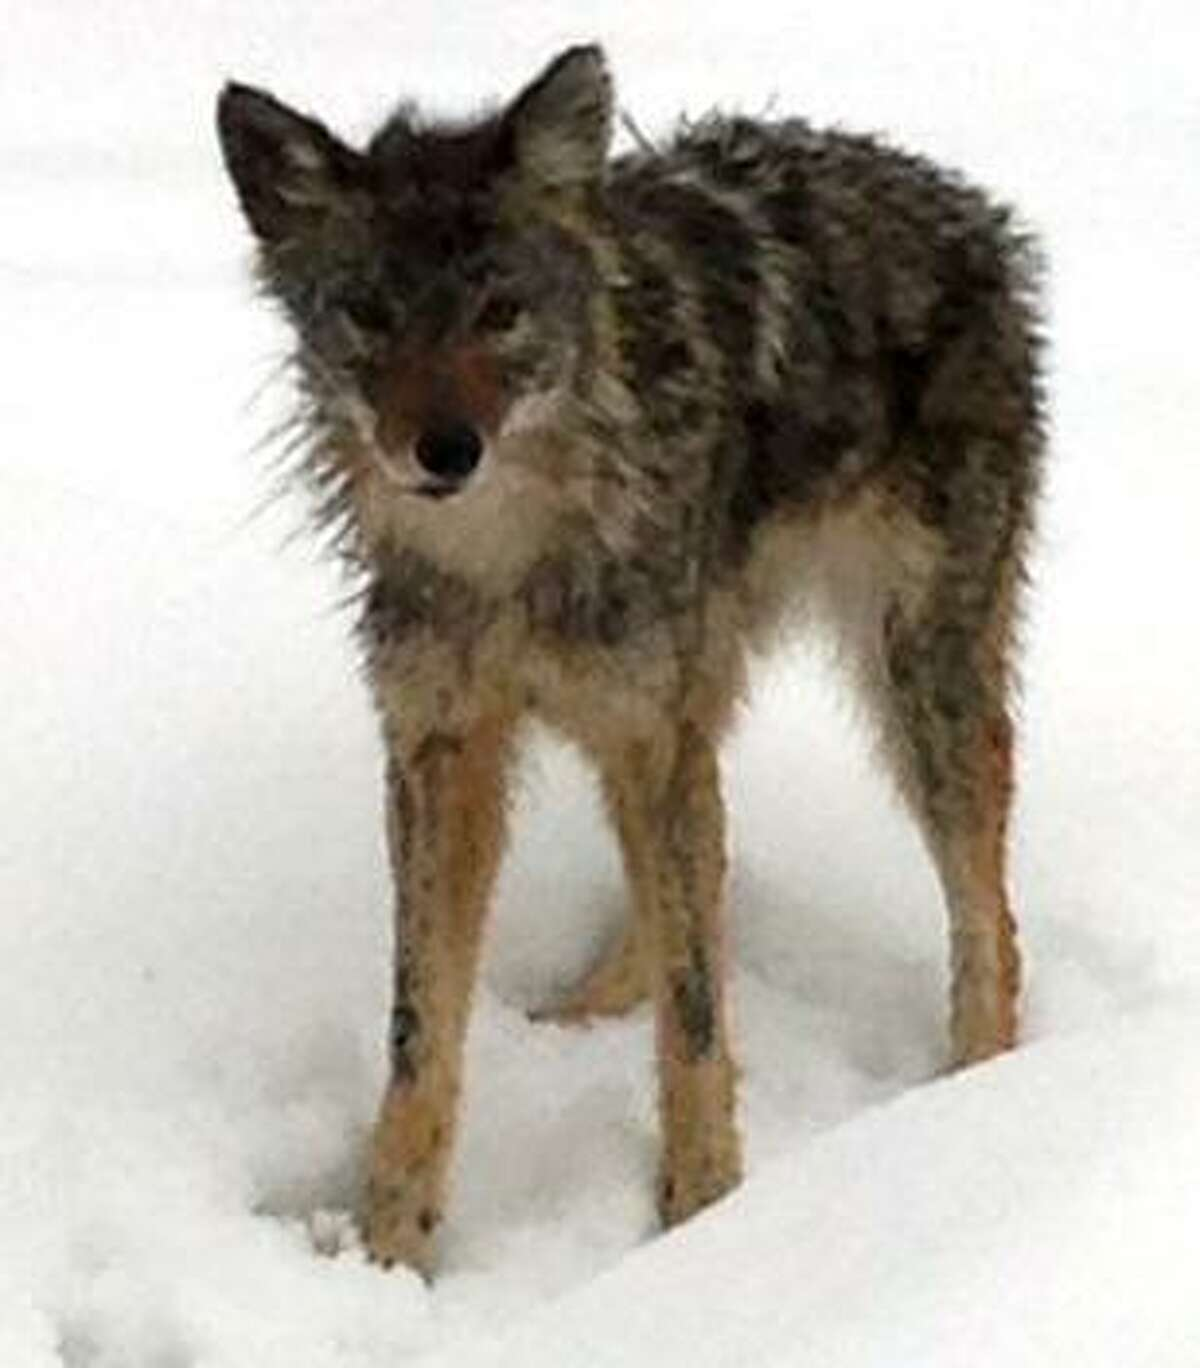 A coyote in Stamford